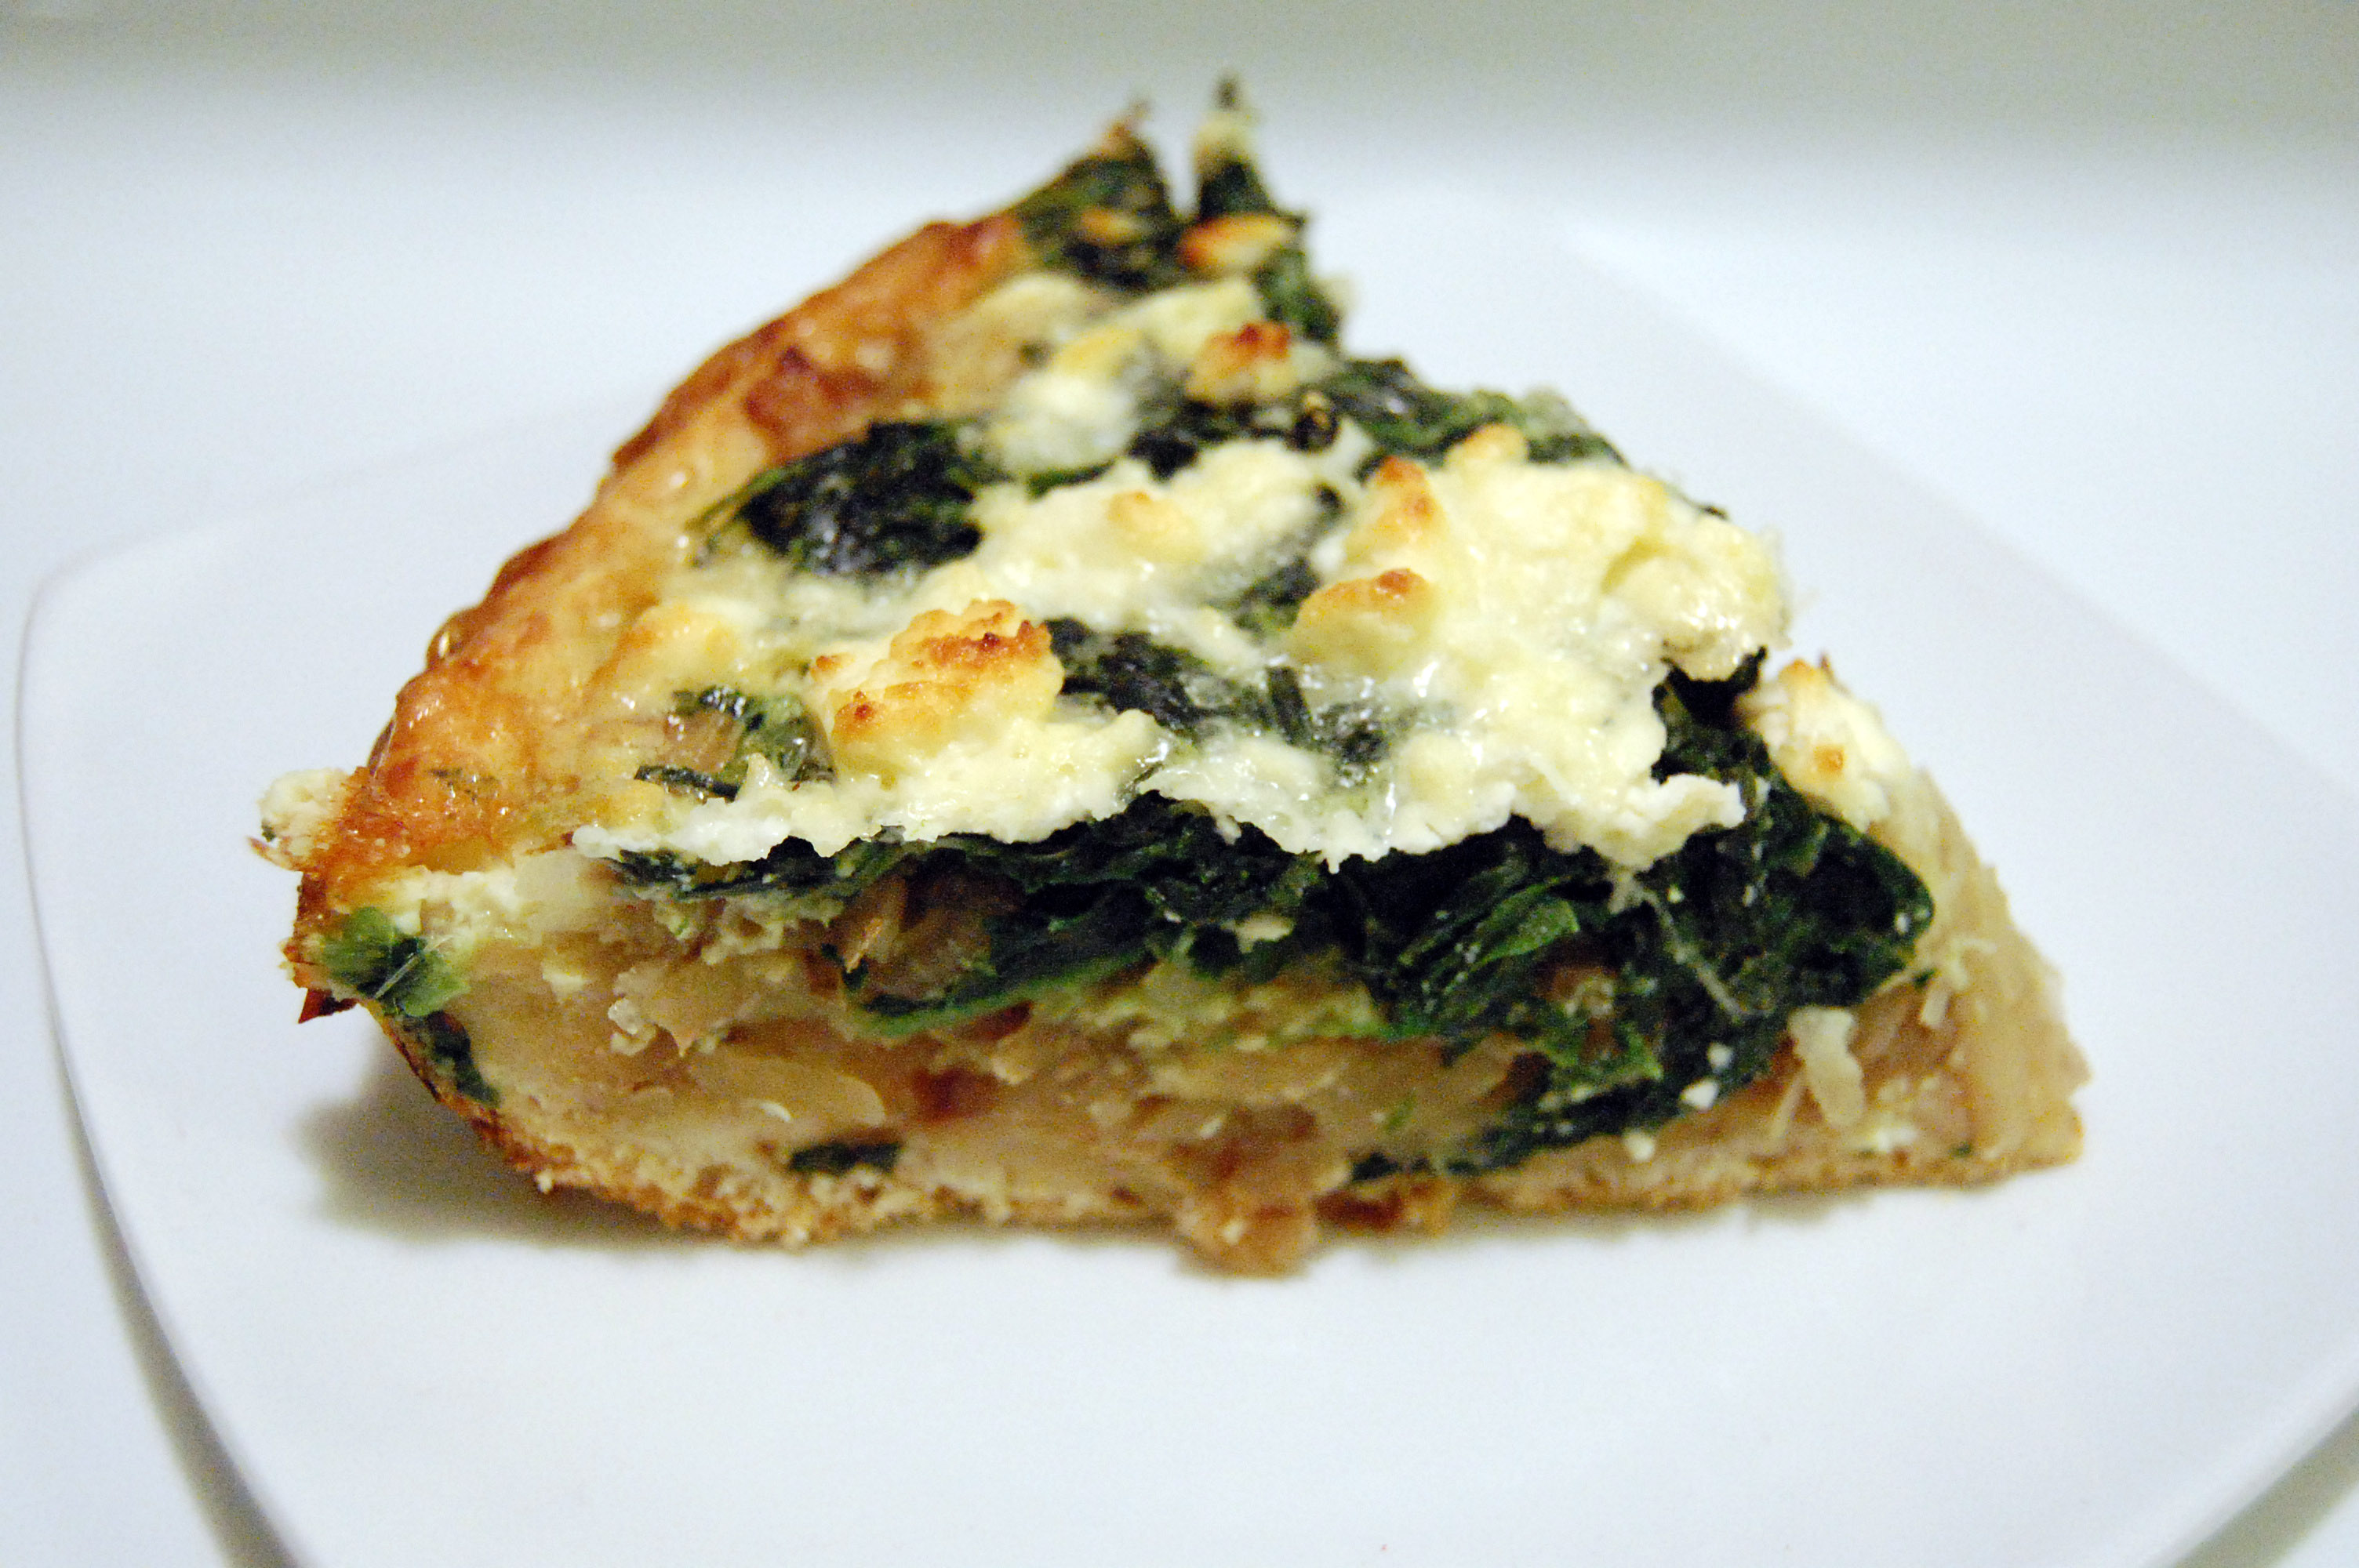 quiche asparagus and spinach quiche asparagus spinach feta spinach ...